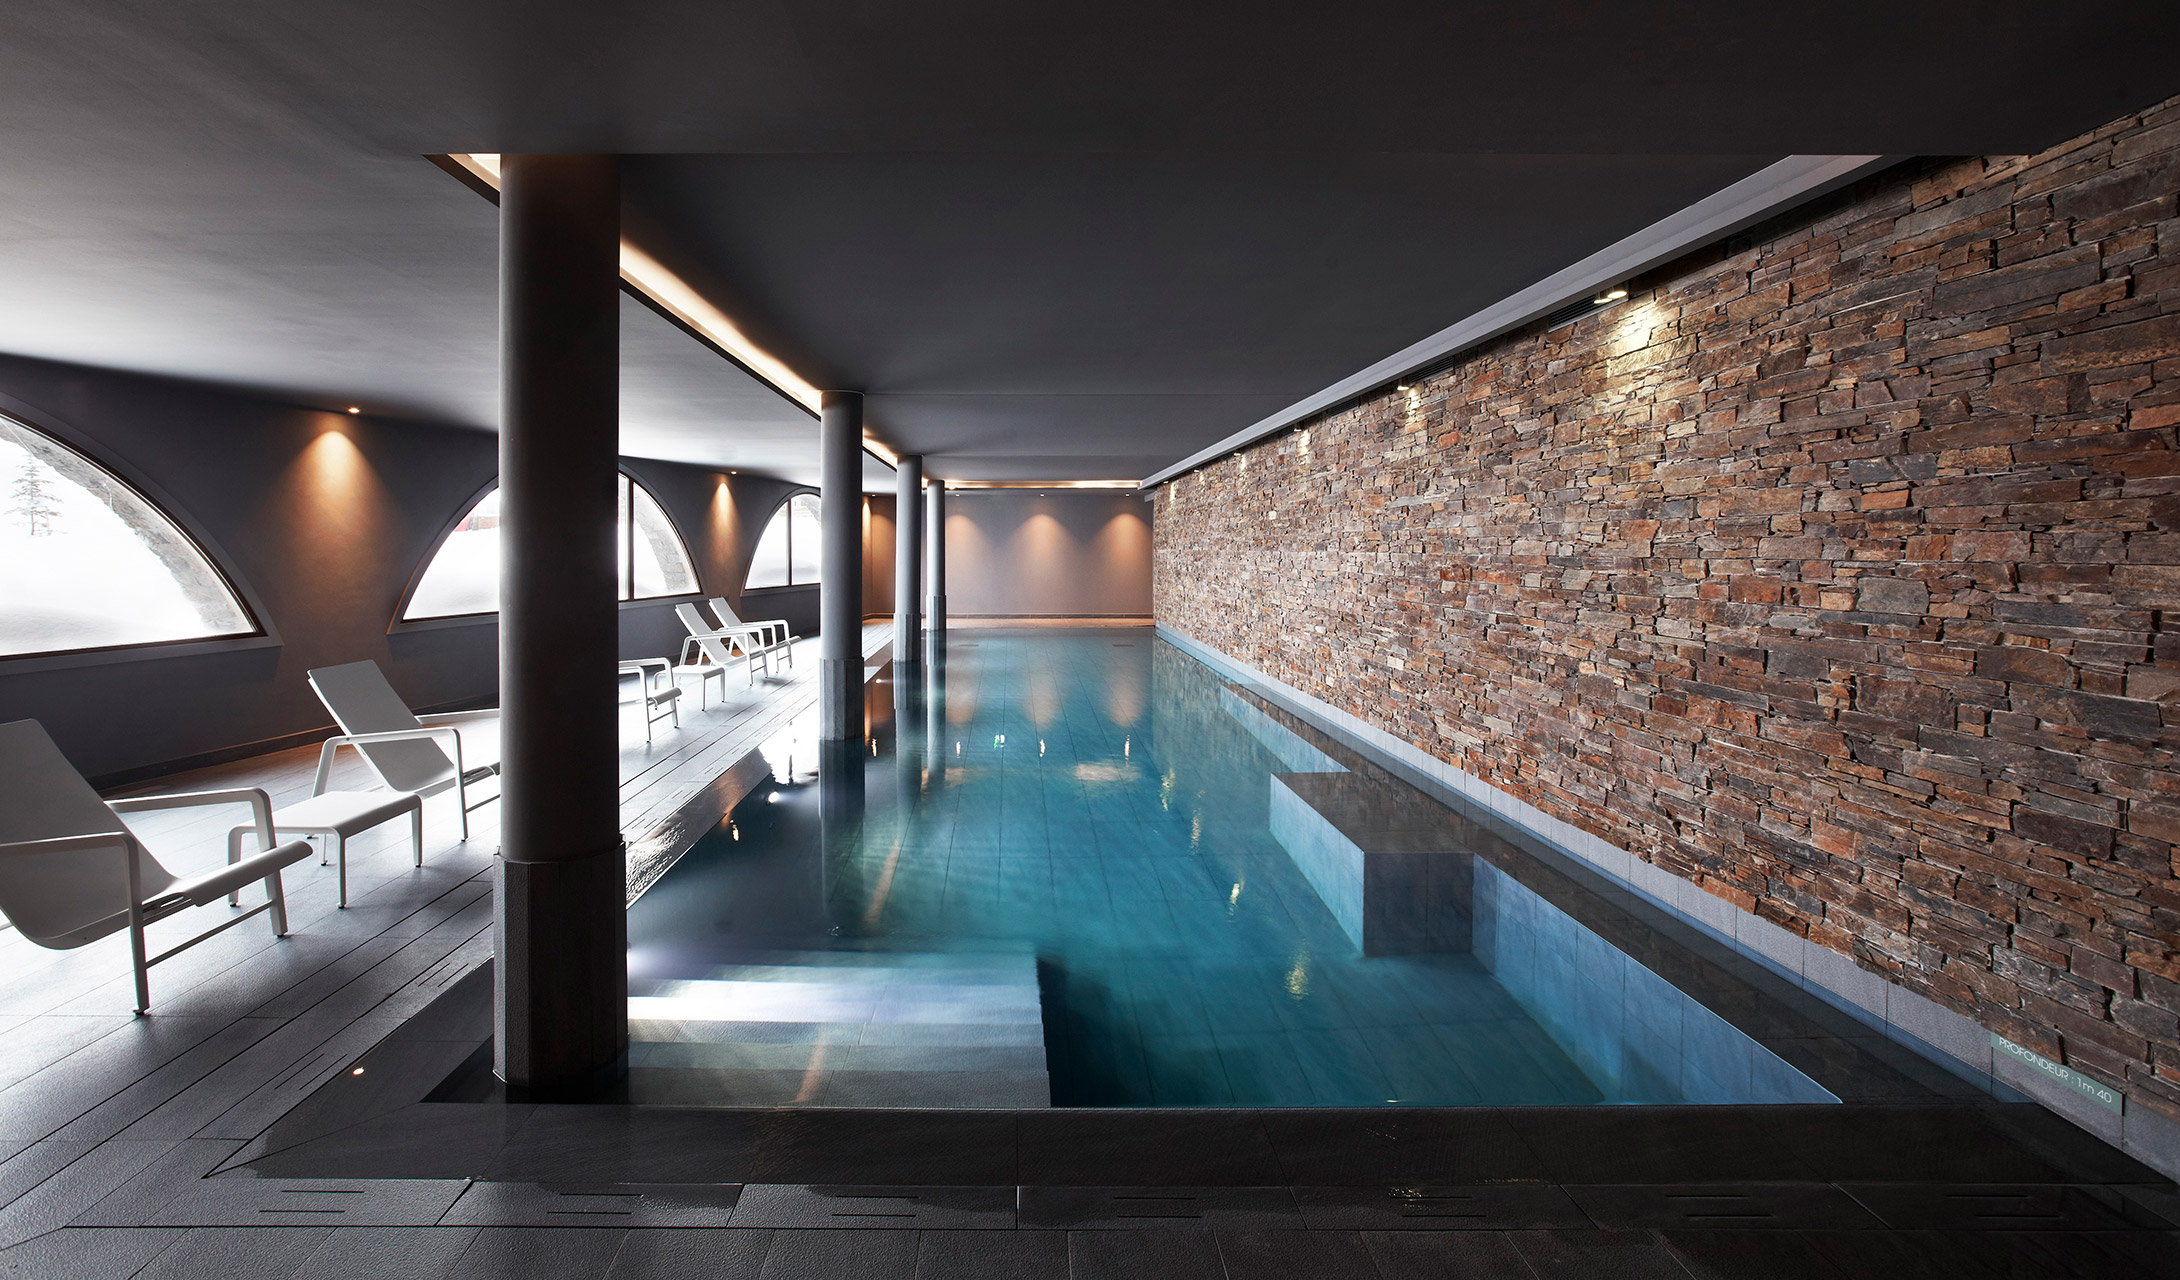 Le val thorens val thorens france design hotels for Design hotels france